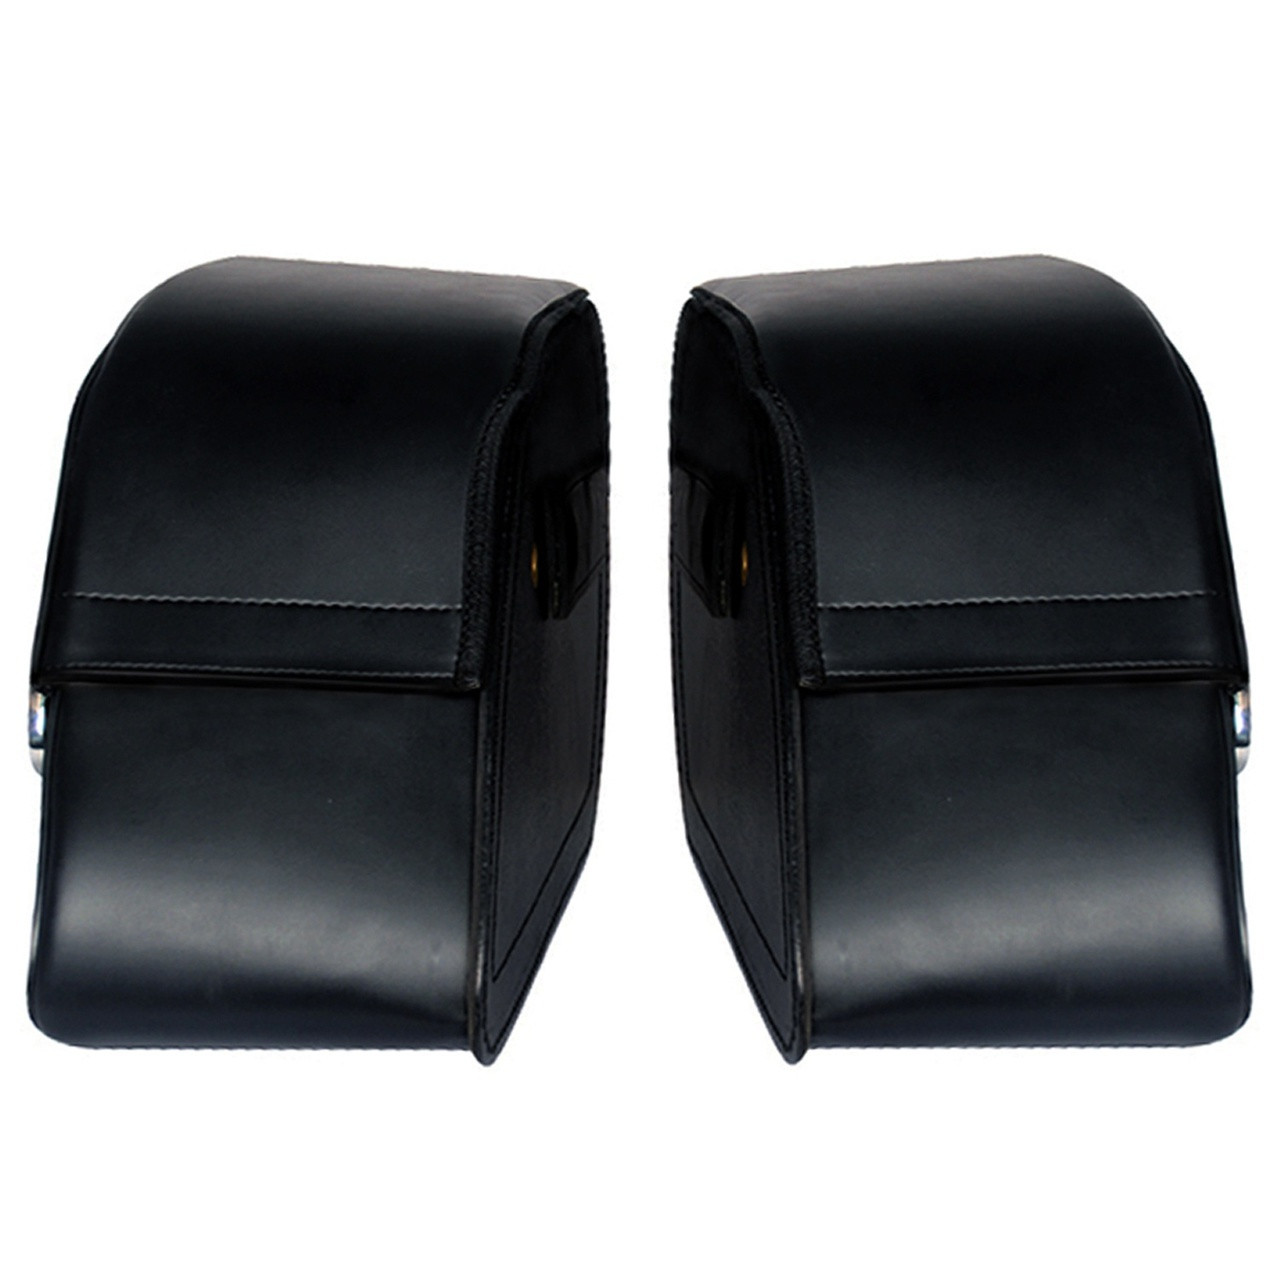 Charger Slanted Studded Saddlebags Left View